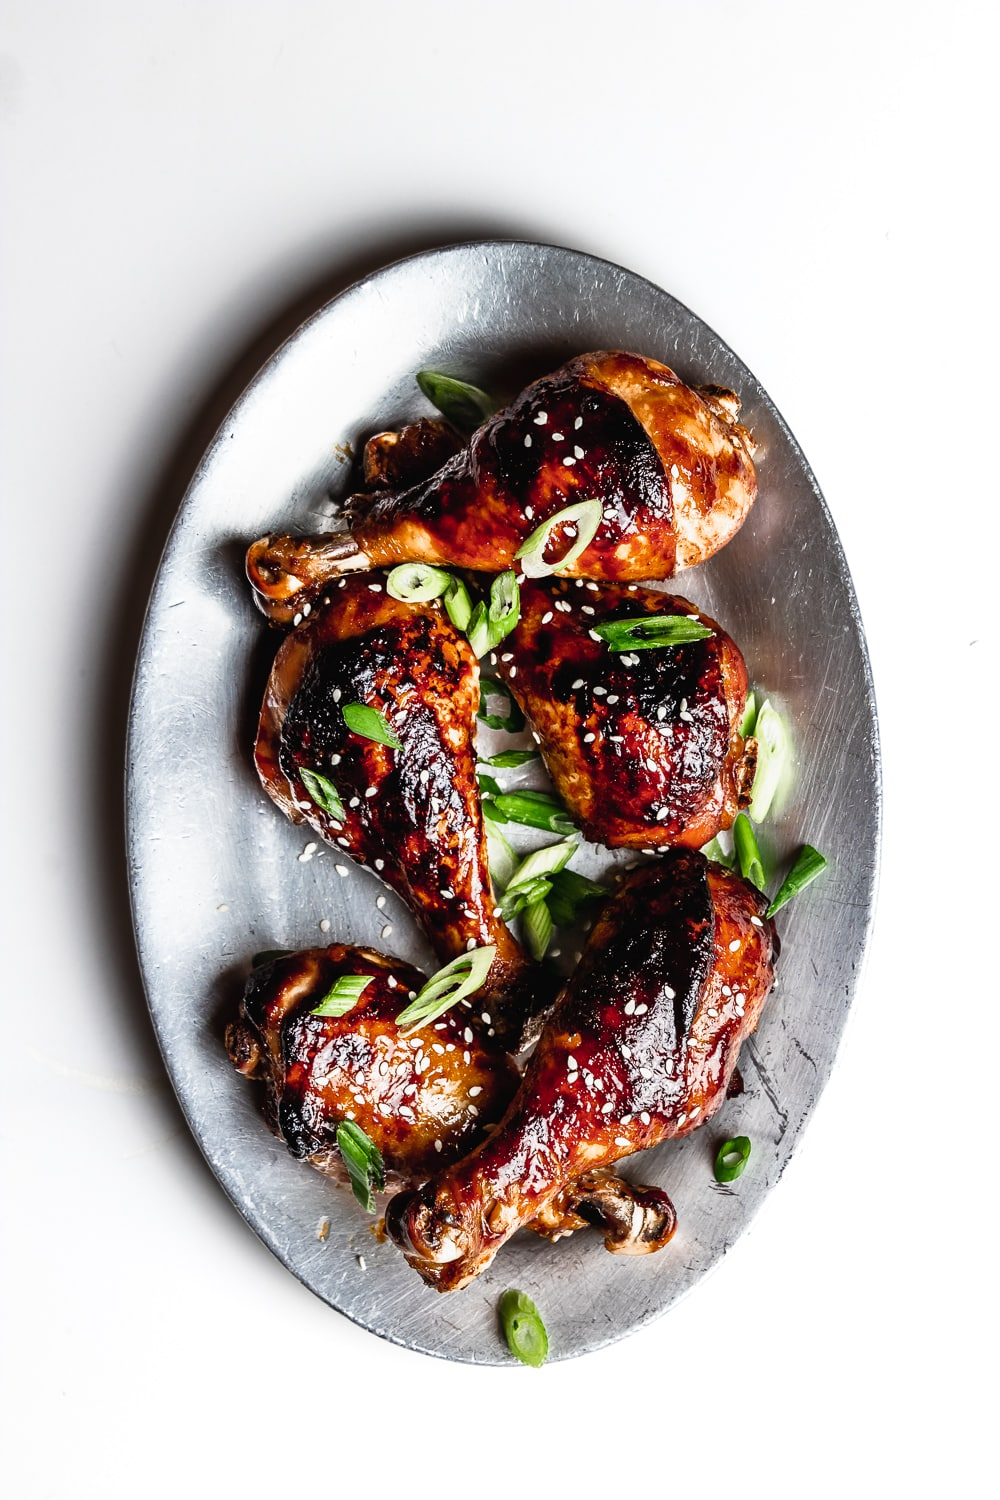 Sesame soy chicken drumsticks with sesame seeds and sliced scallions on a silver plate